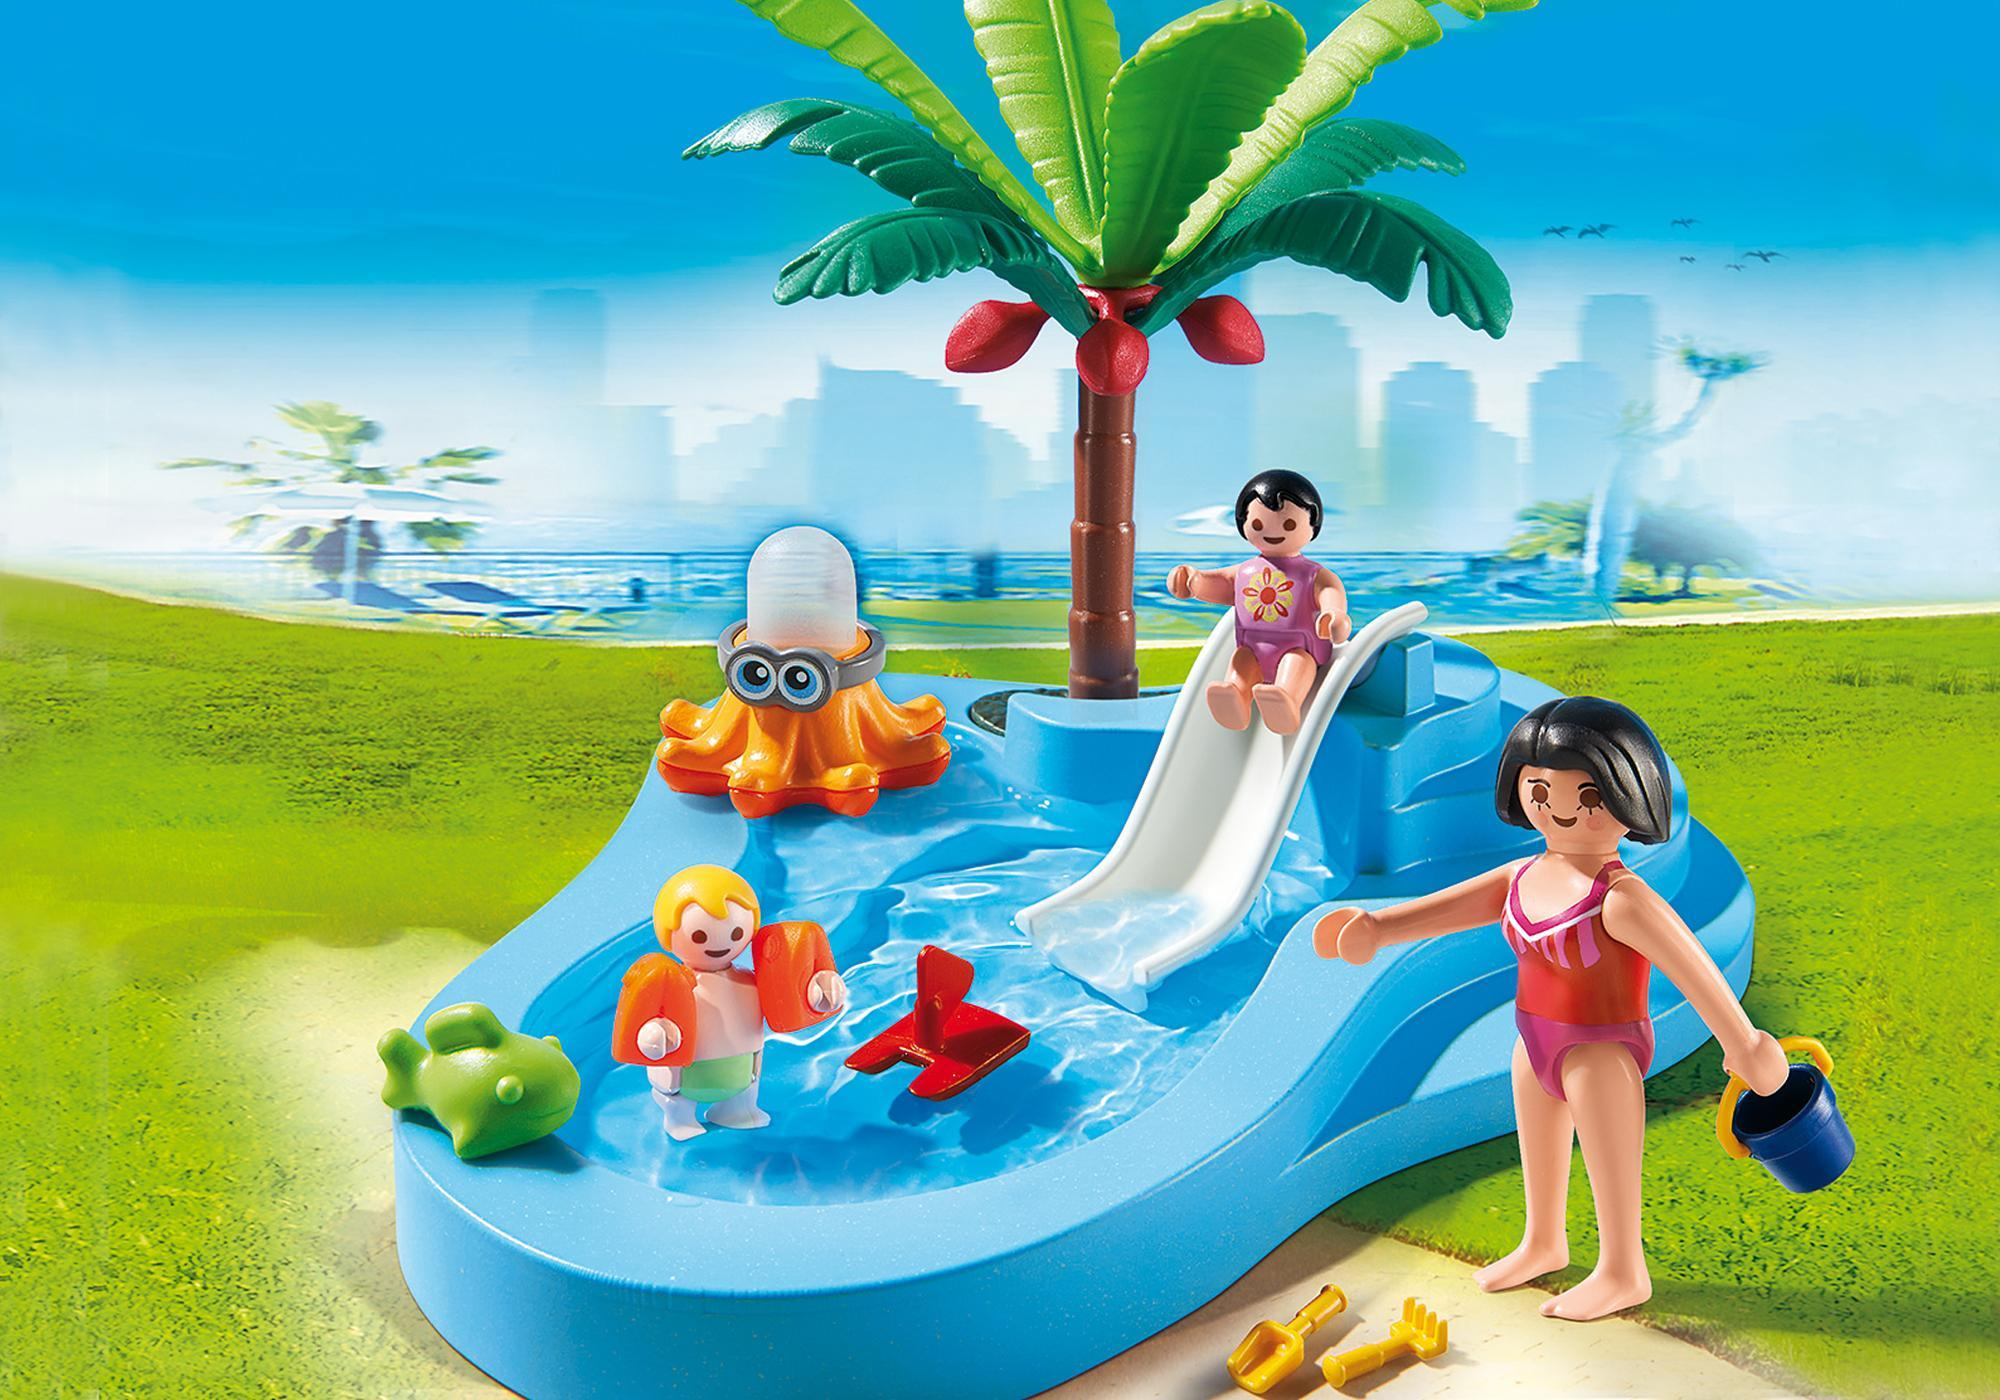 http://media.playmobil.com/i/playmobil/6673_product_detail/Baby Pool with Slide